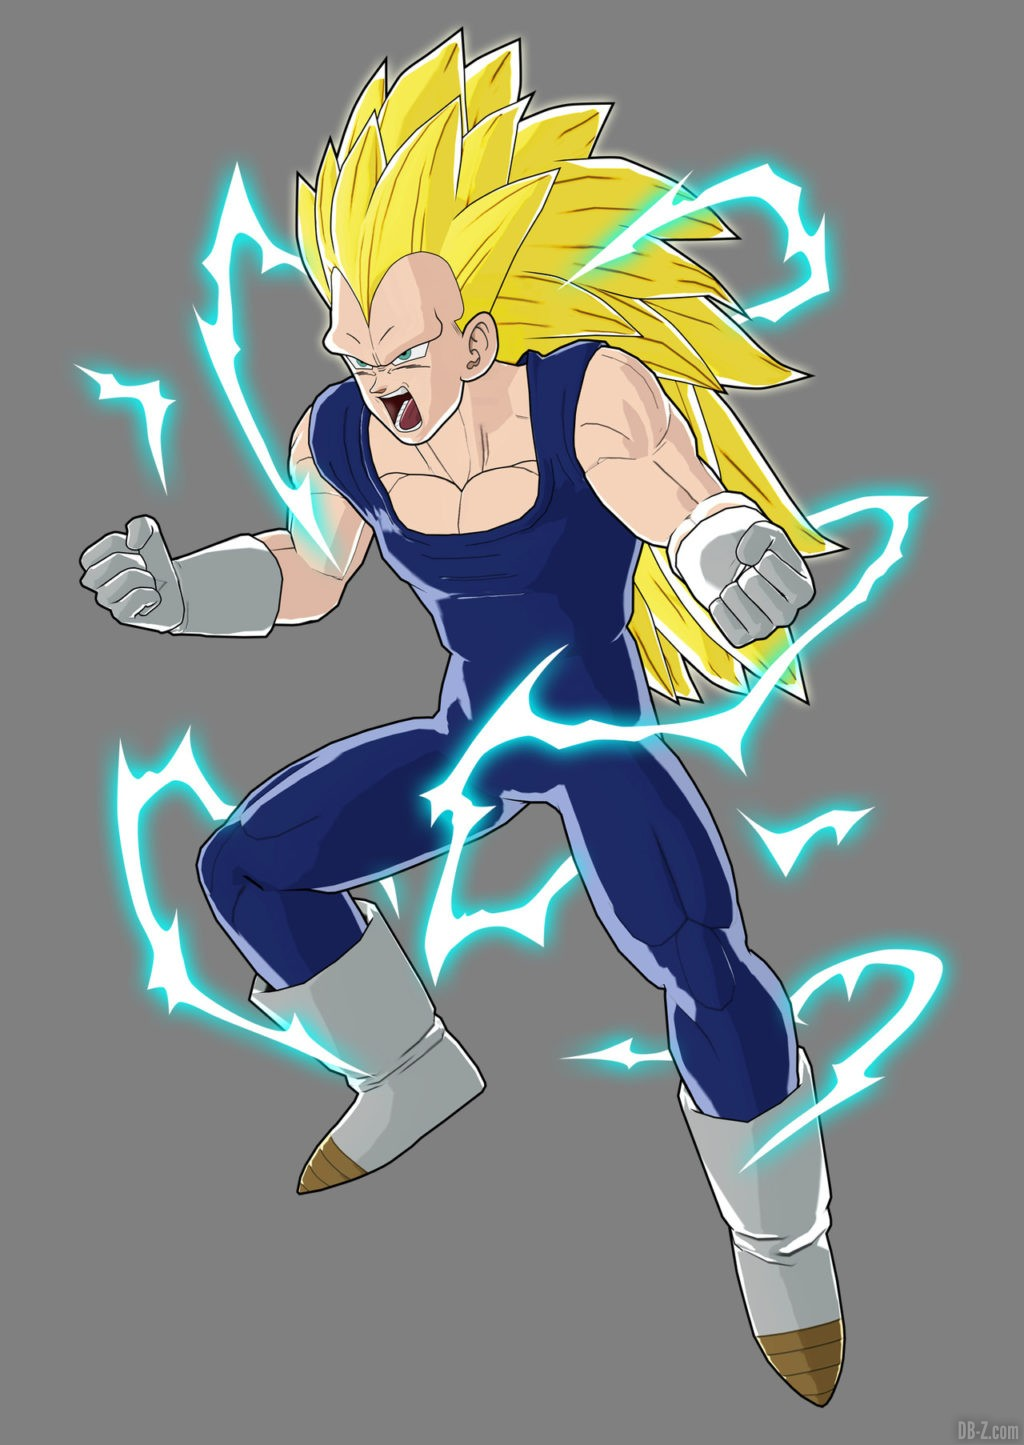 Artwork Vegeta Super Saiyan 3 Raging Blast